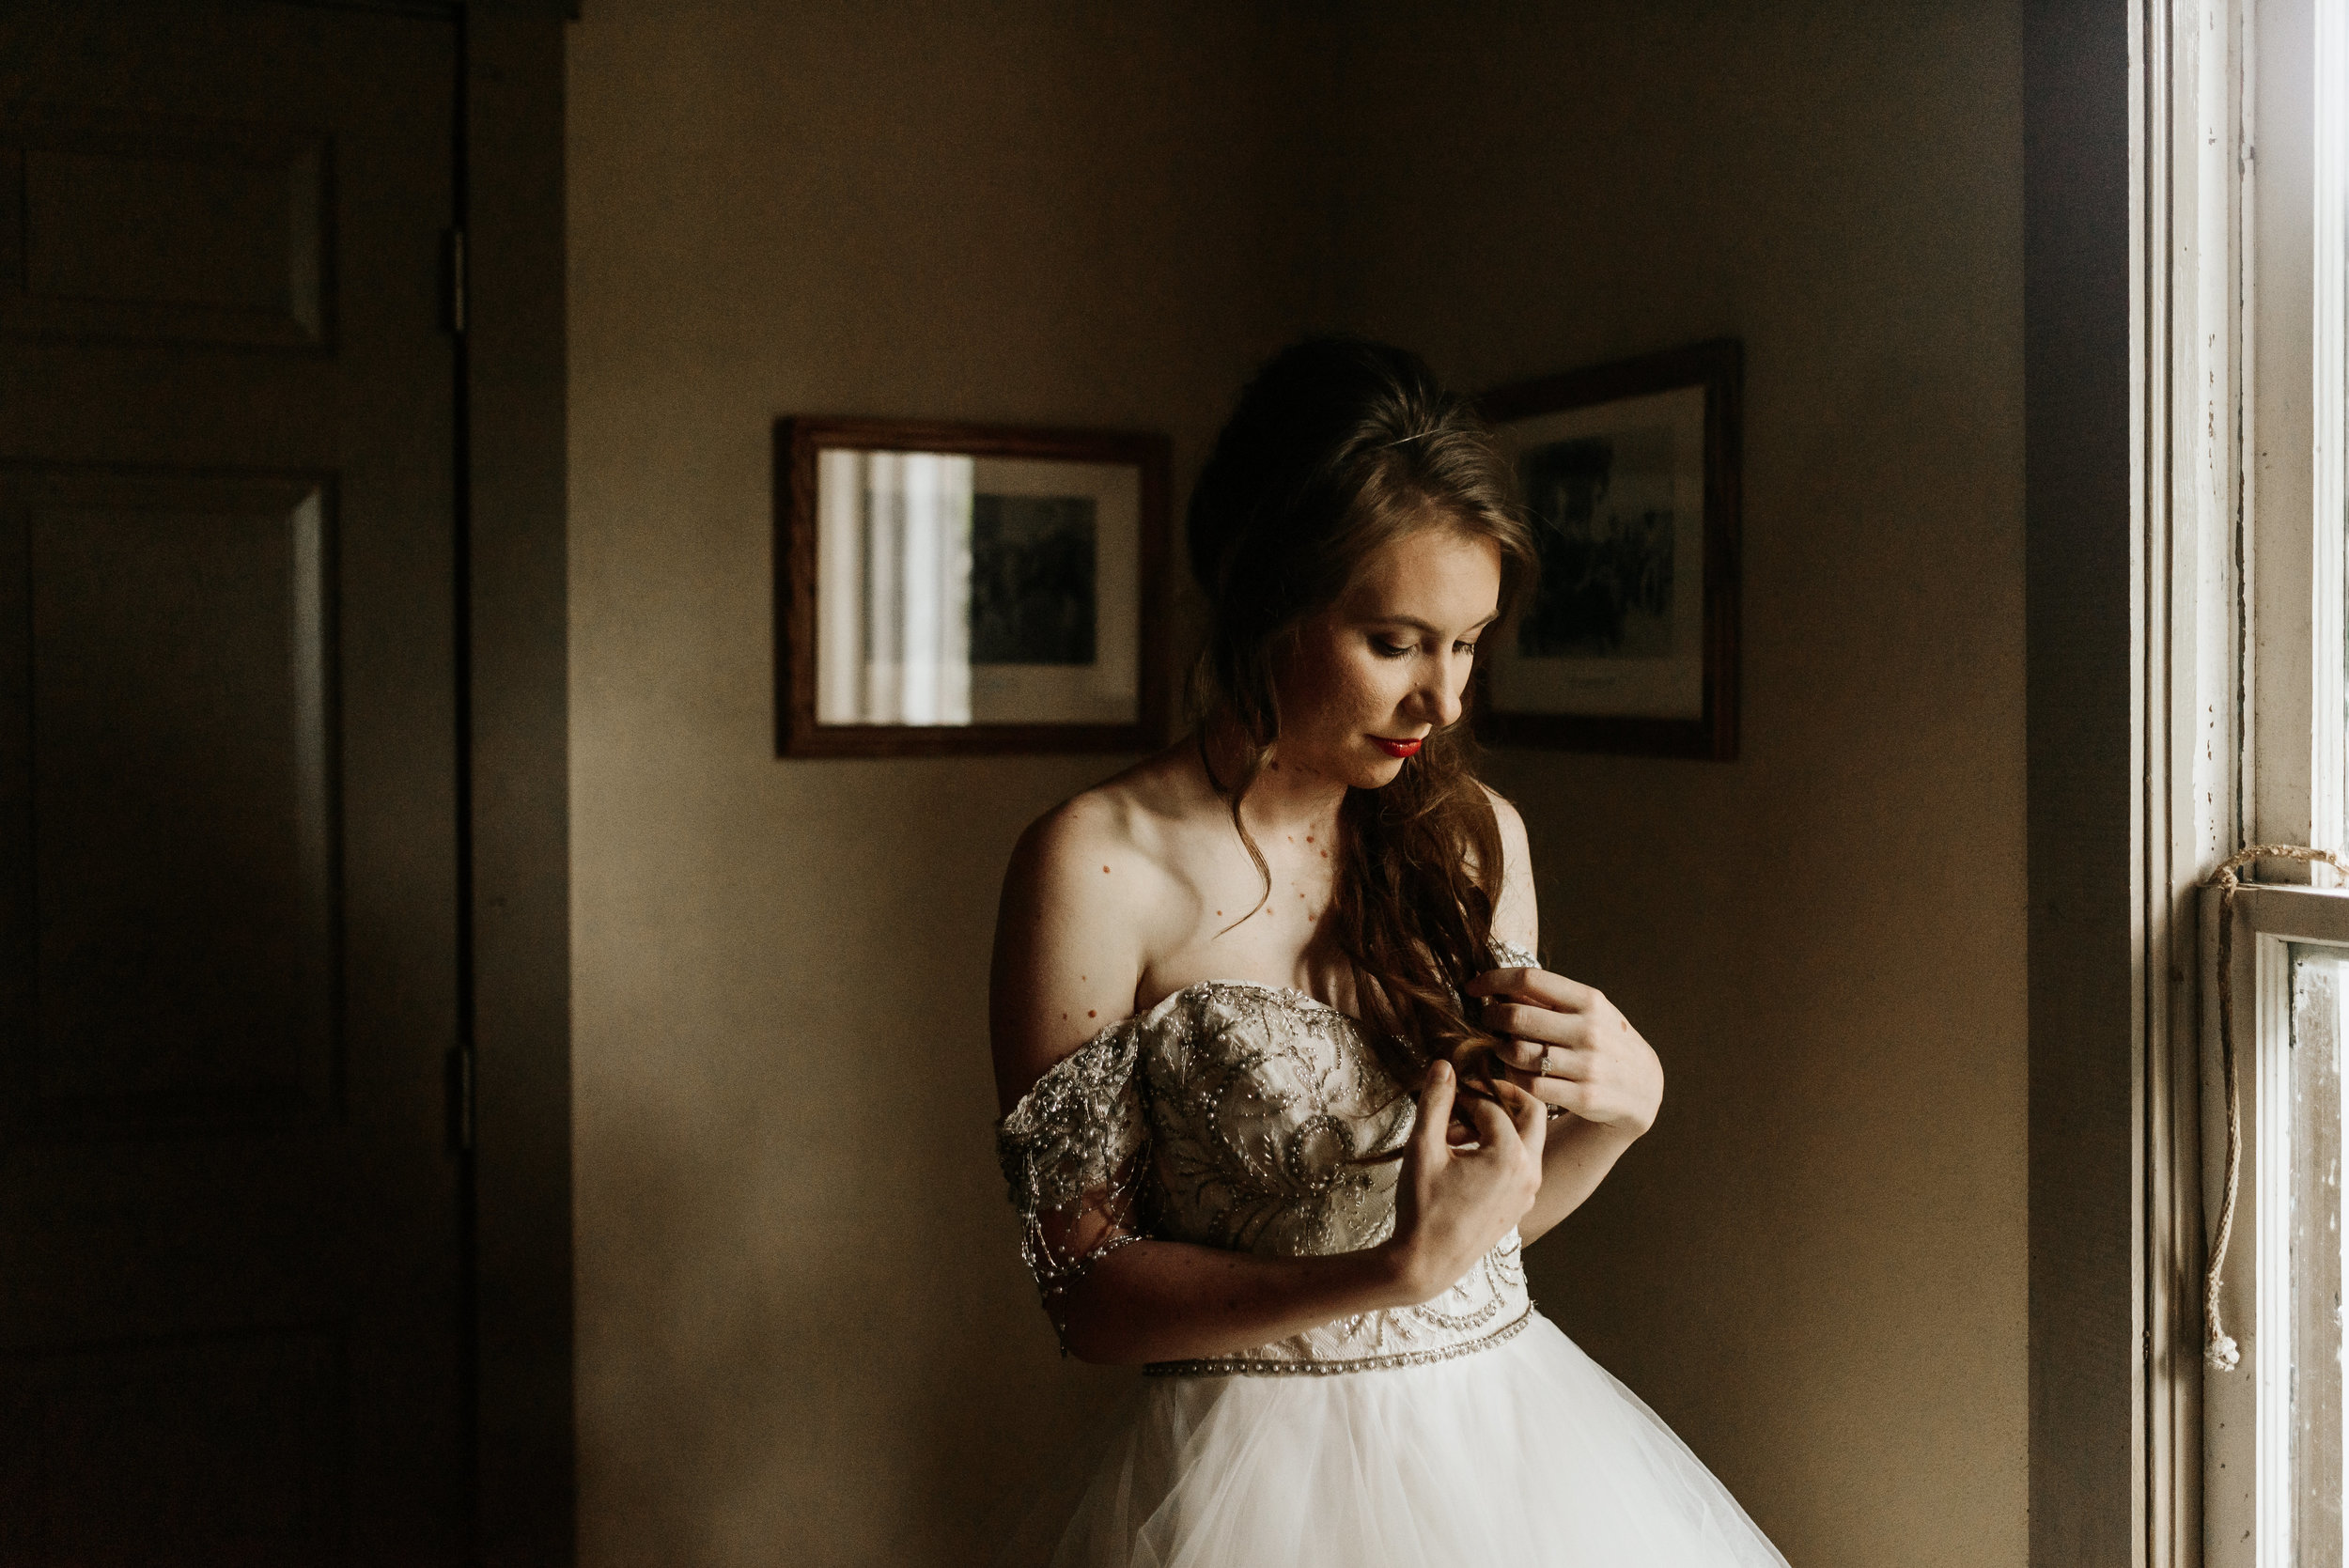 Grant-Station-Styled-Shoot-Whimsical-Moody-Fairytale-Wedding-Photography-by-V-9673.jpg